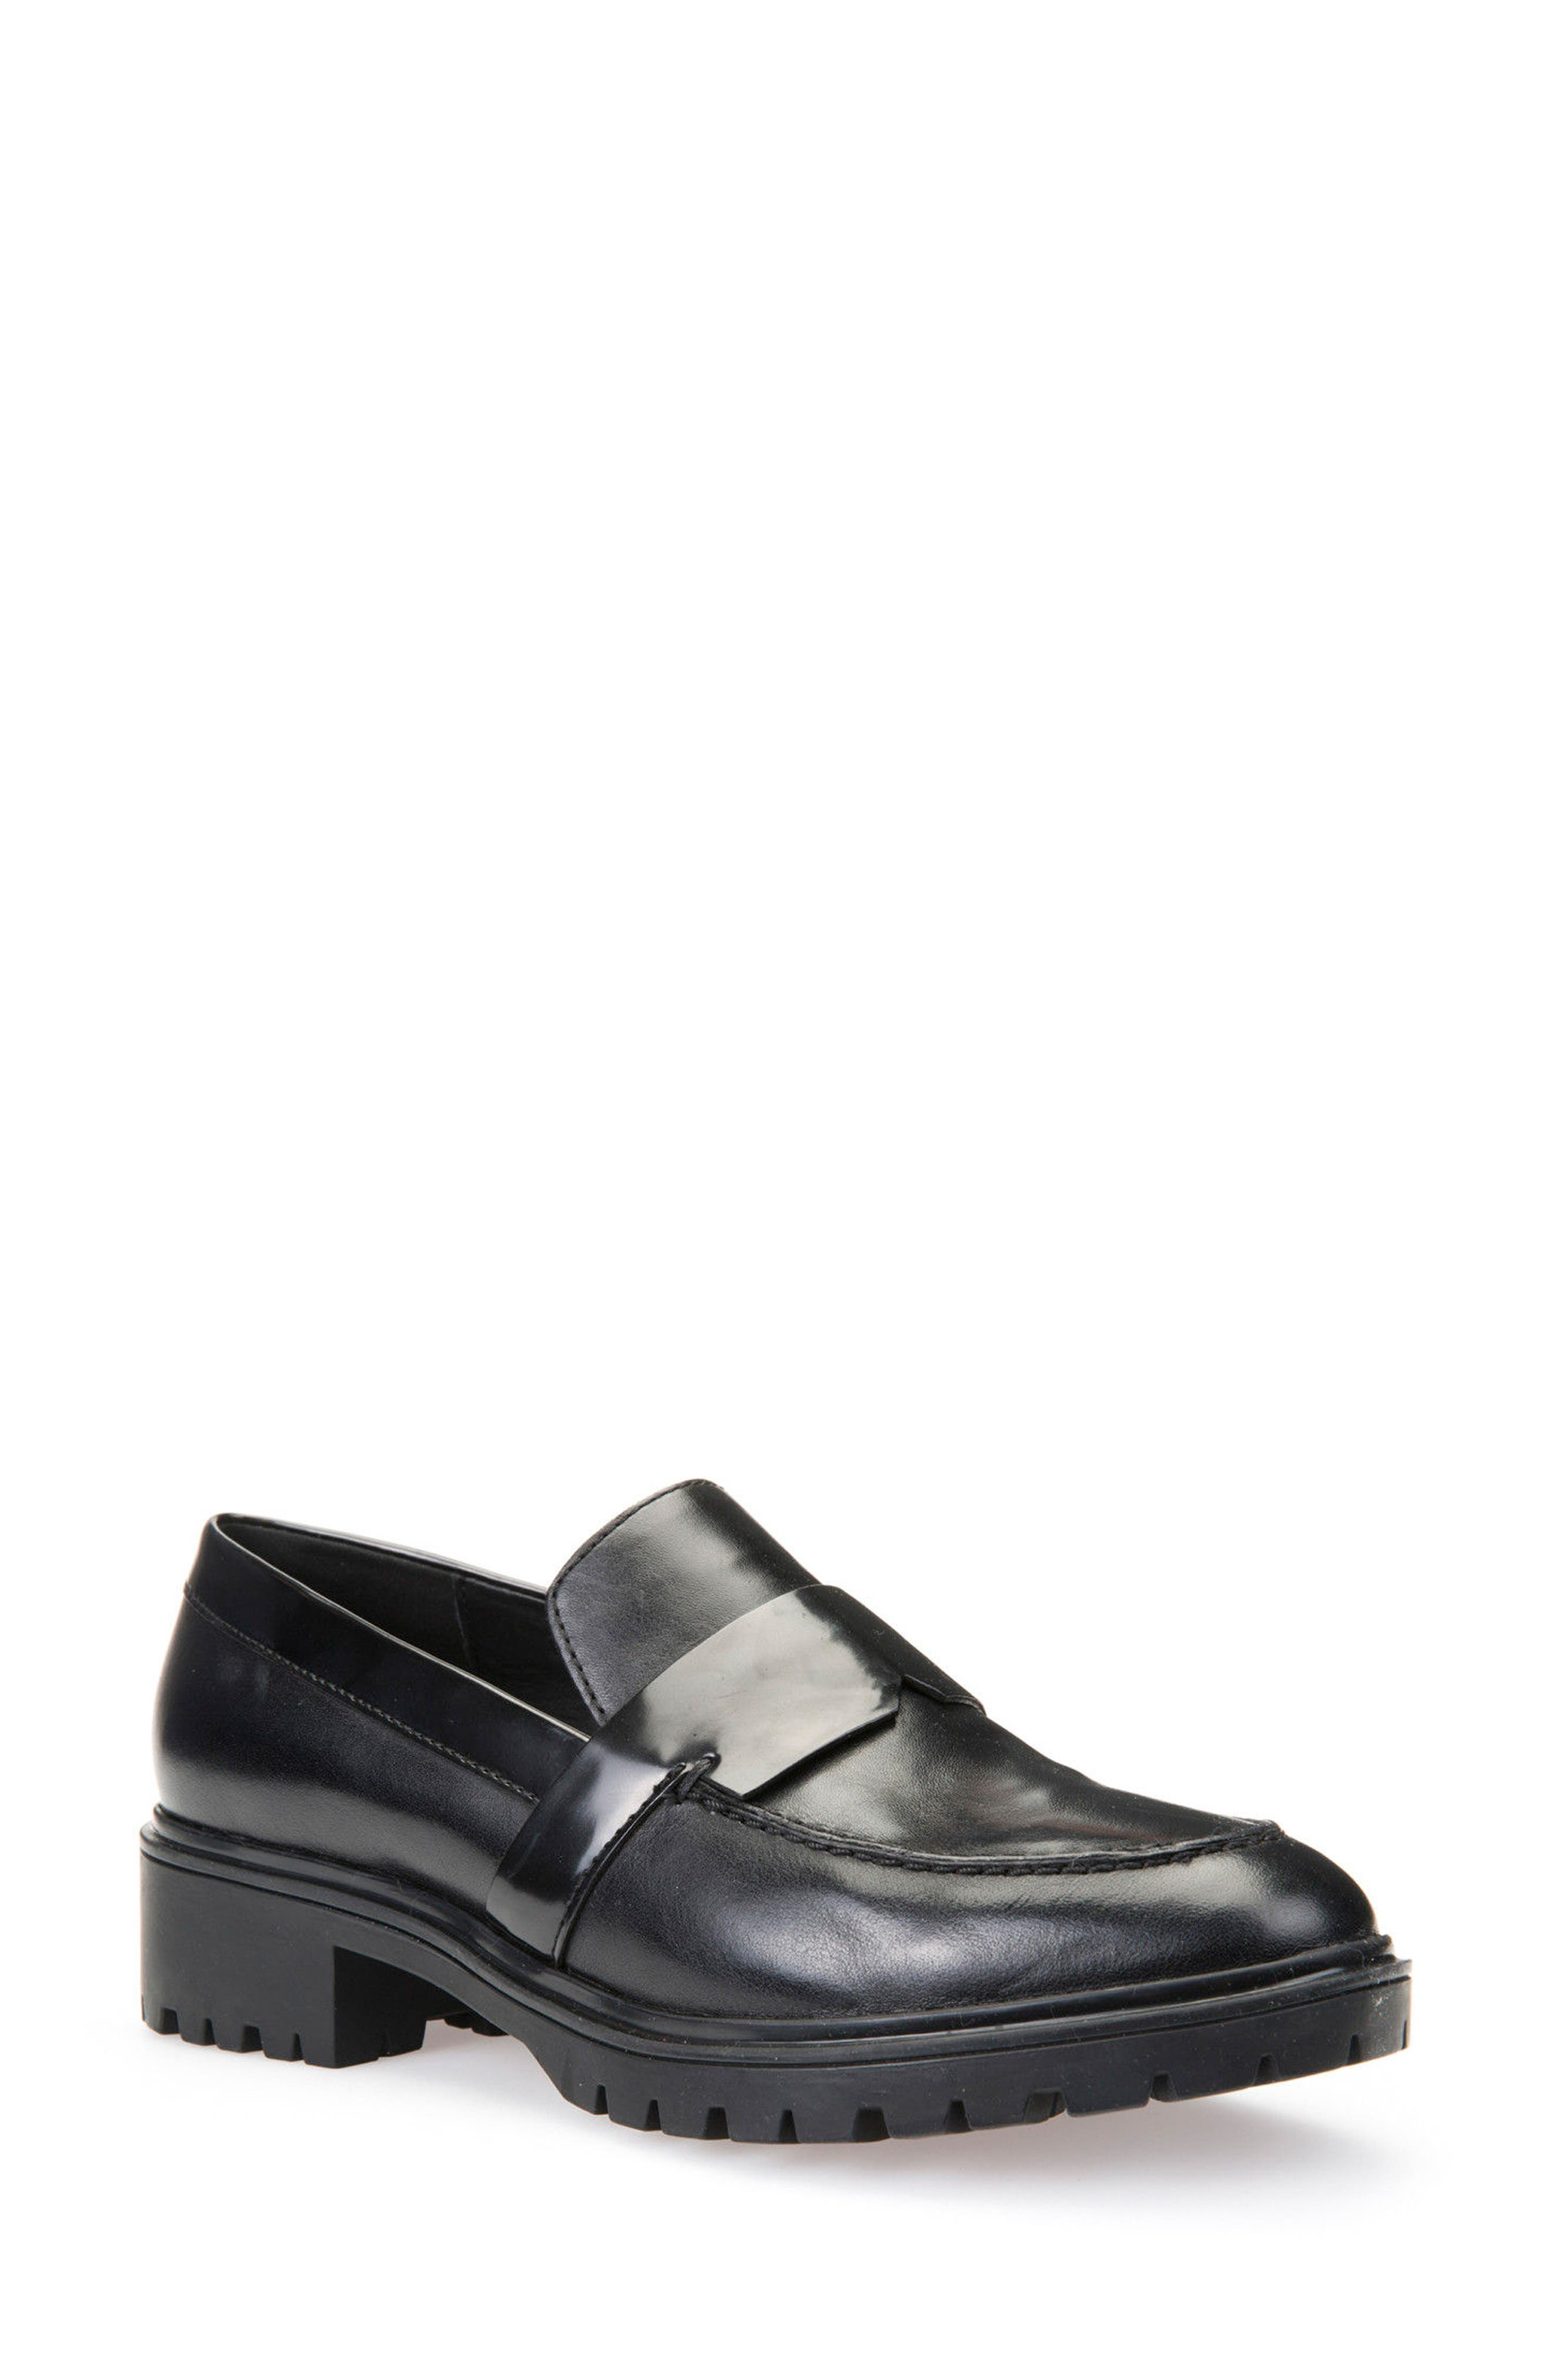 Peaceful Loafer Pump,                             Main thumbnail 1, color,                             001